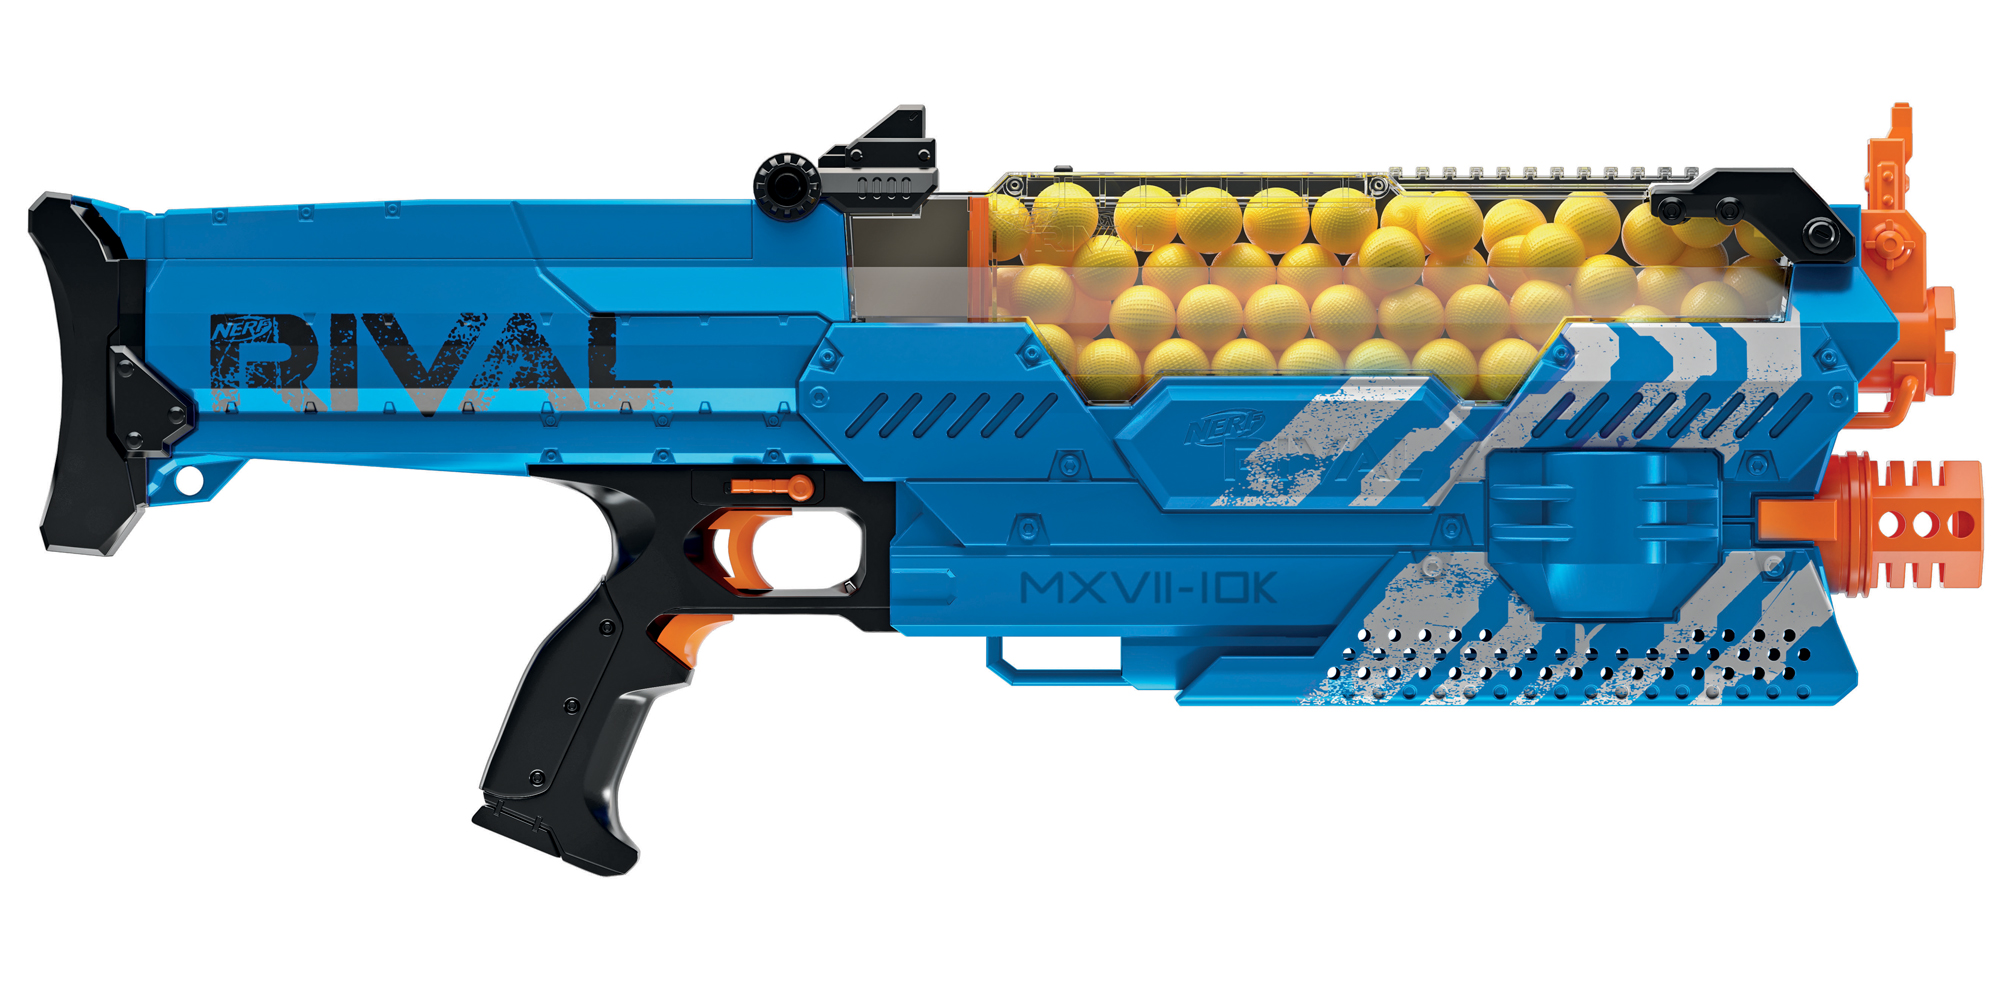 Nerf News  What We U0026 39 Ll See At The 2017 New York Toy Fair